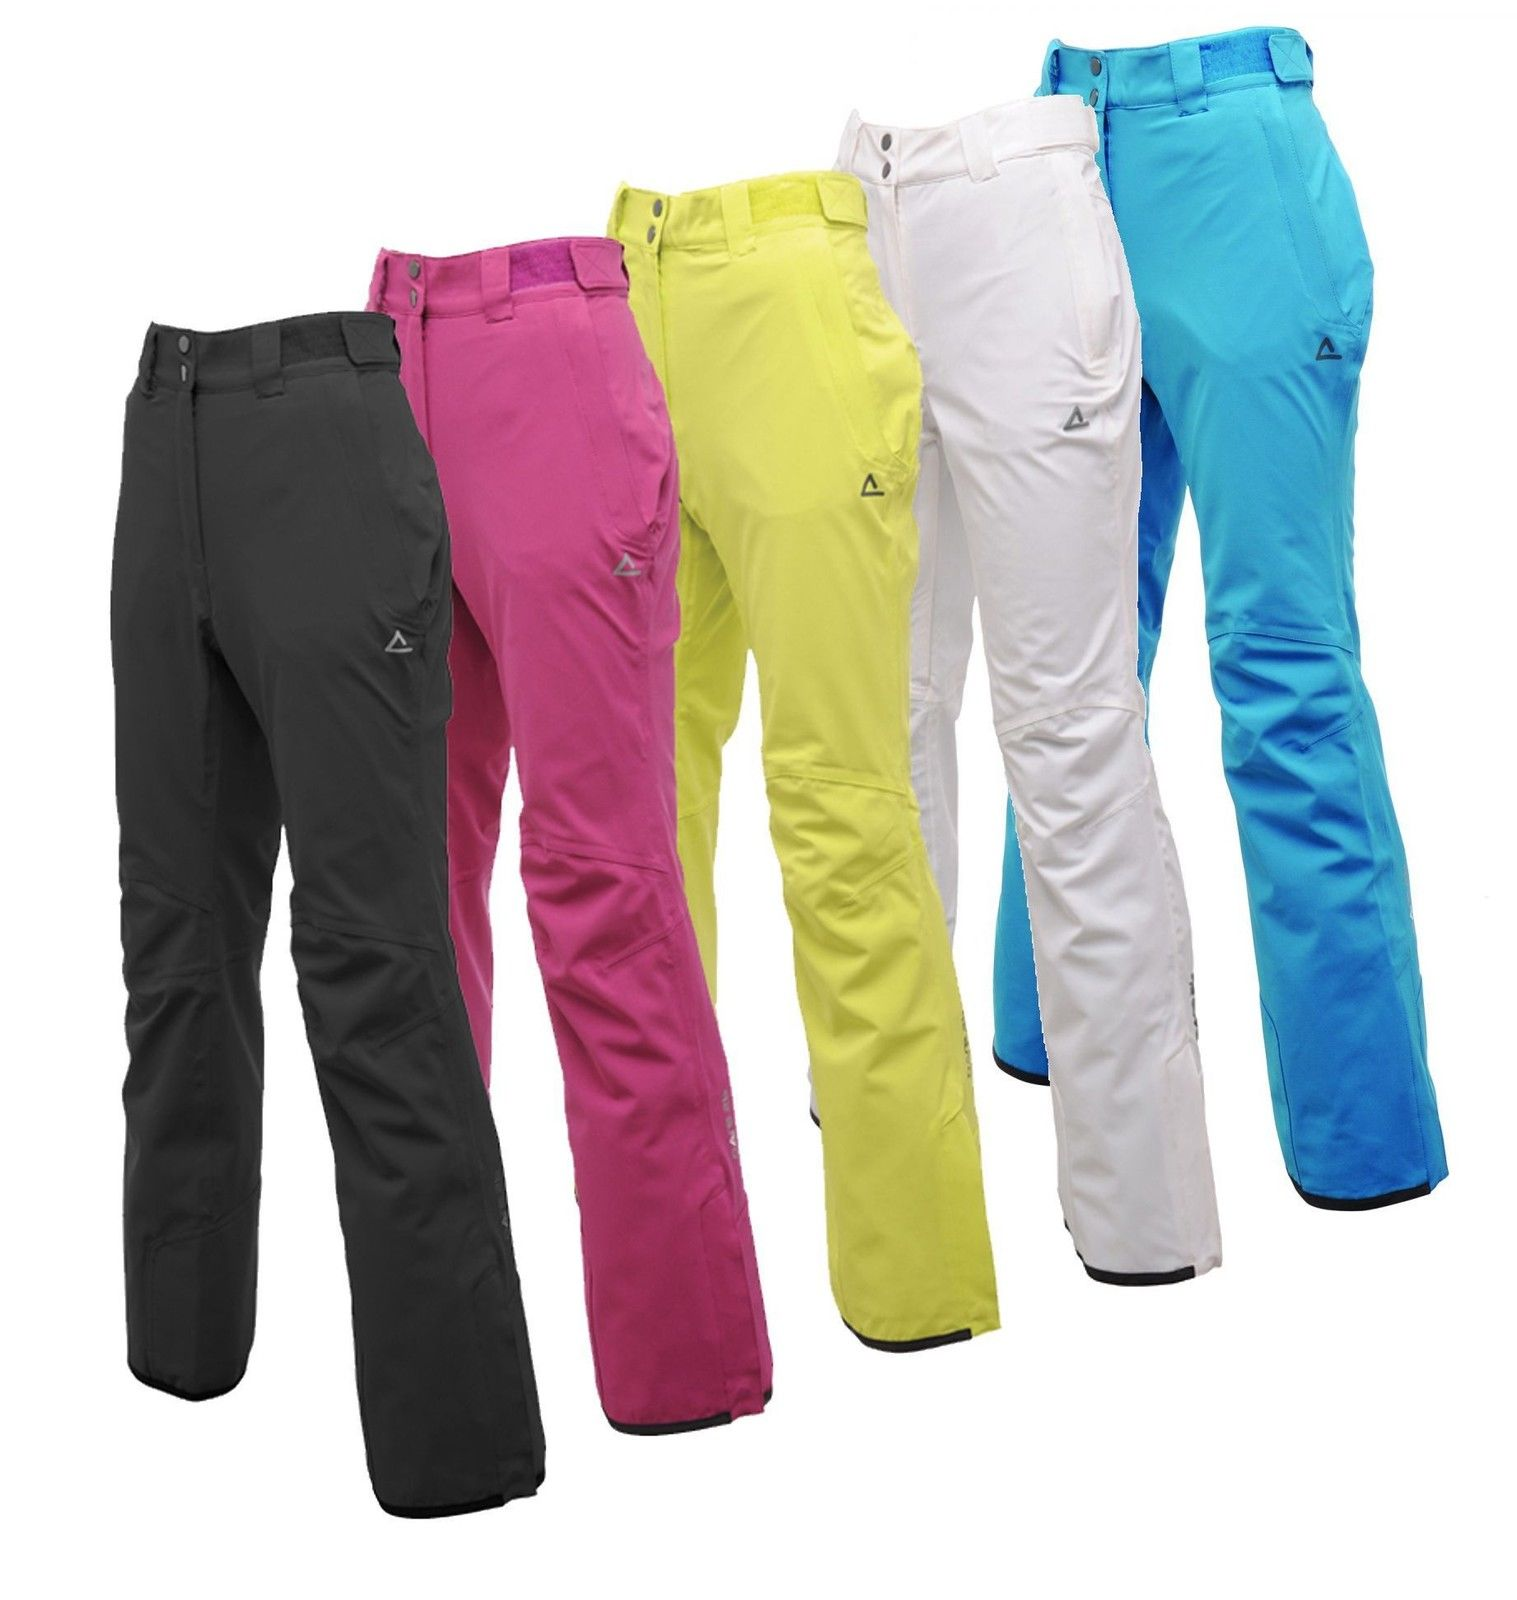 Ski Salopettes - Browse through a variety of styles, colours, and fit of ski pant to keep you warm, dry and protected in the snow, without compromising on your performance.